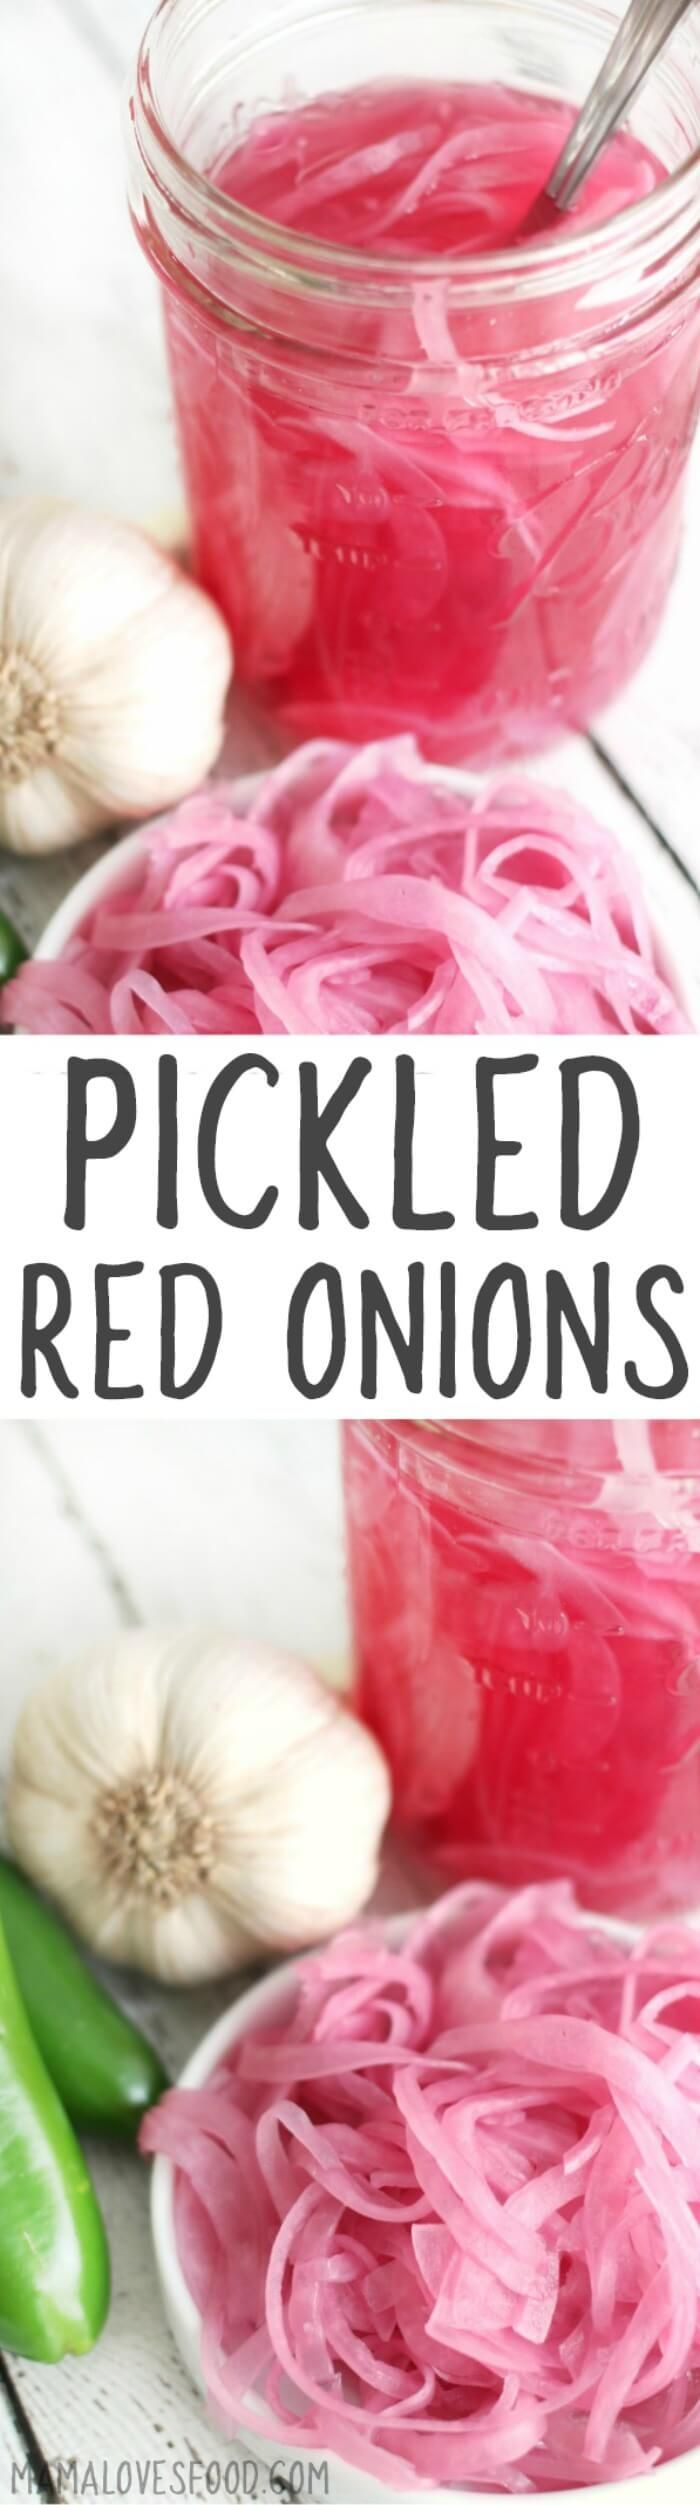 PICKLED RED ONIONS - how to make easy pickled red onions. #pickledonions #pickledredonions #onion #pickles #recipe